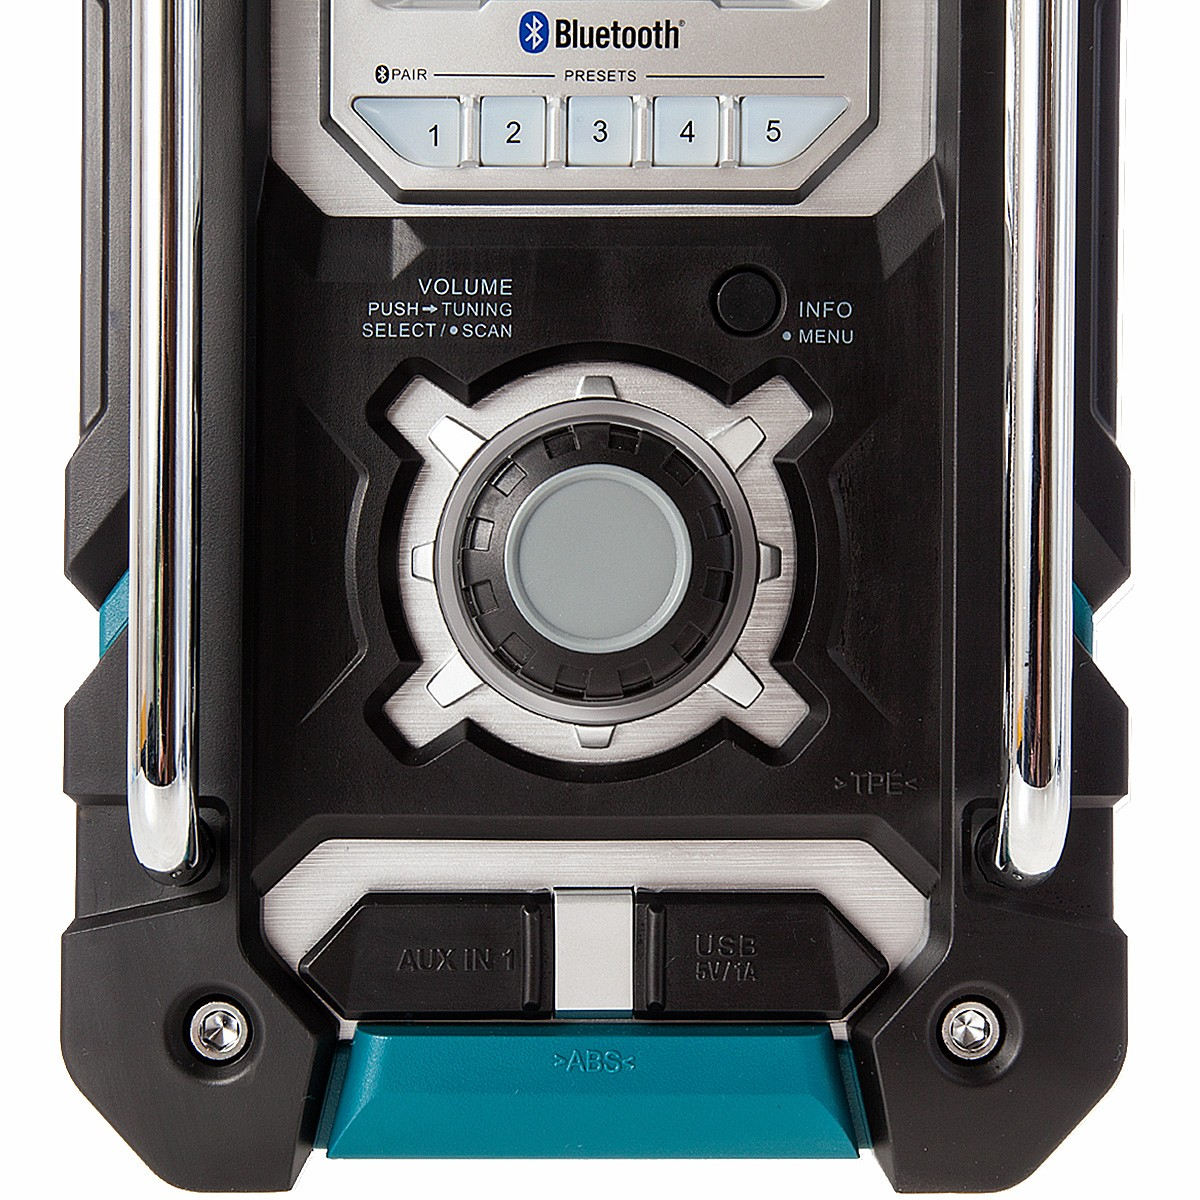 Makita DMR106 Bluetooth Jobsite Radio With USB Charging Port /& 2 x BL1830 Batteries /& DC18RC Charger